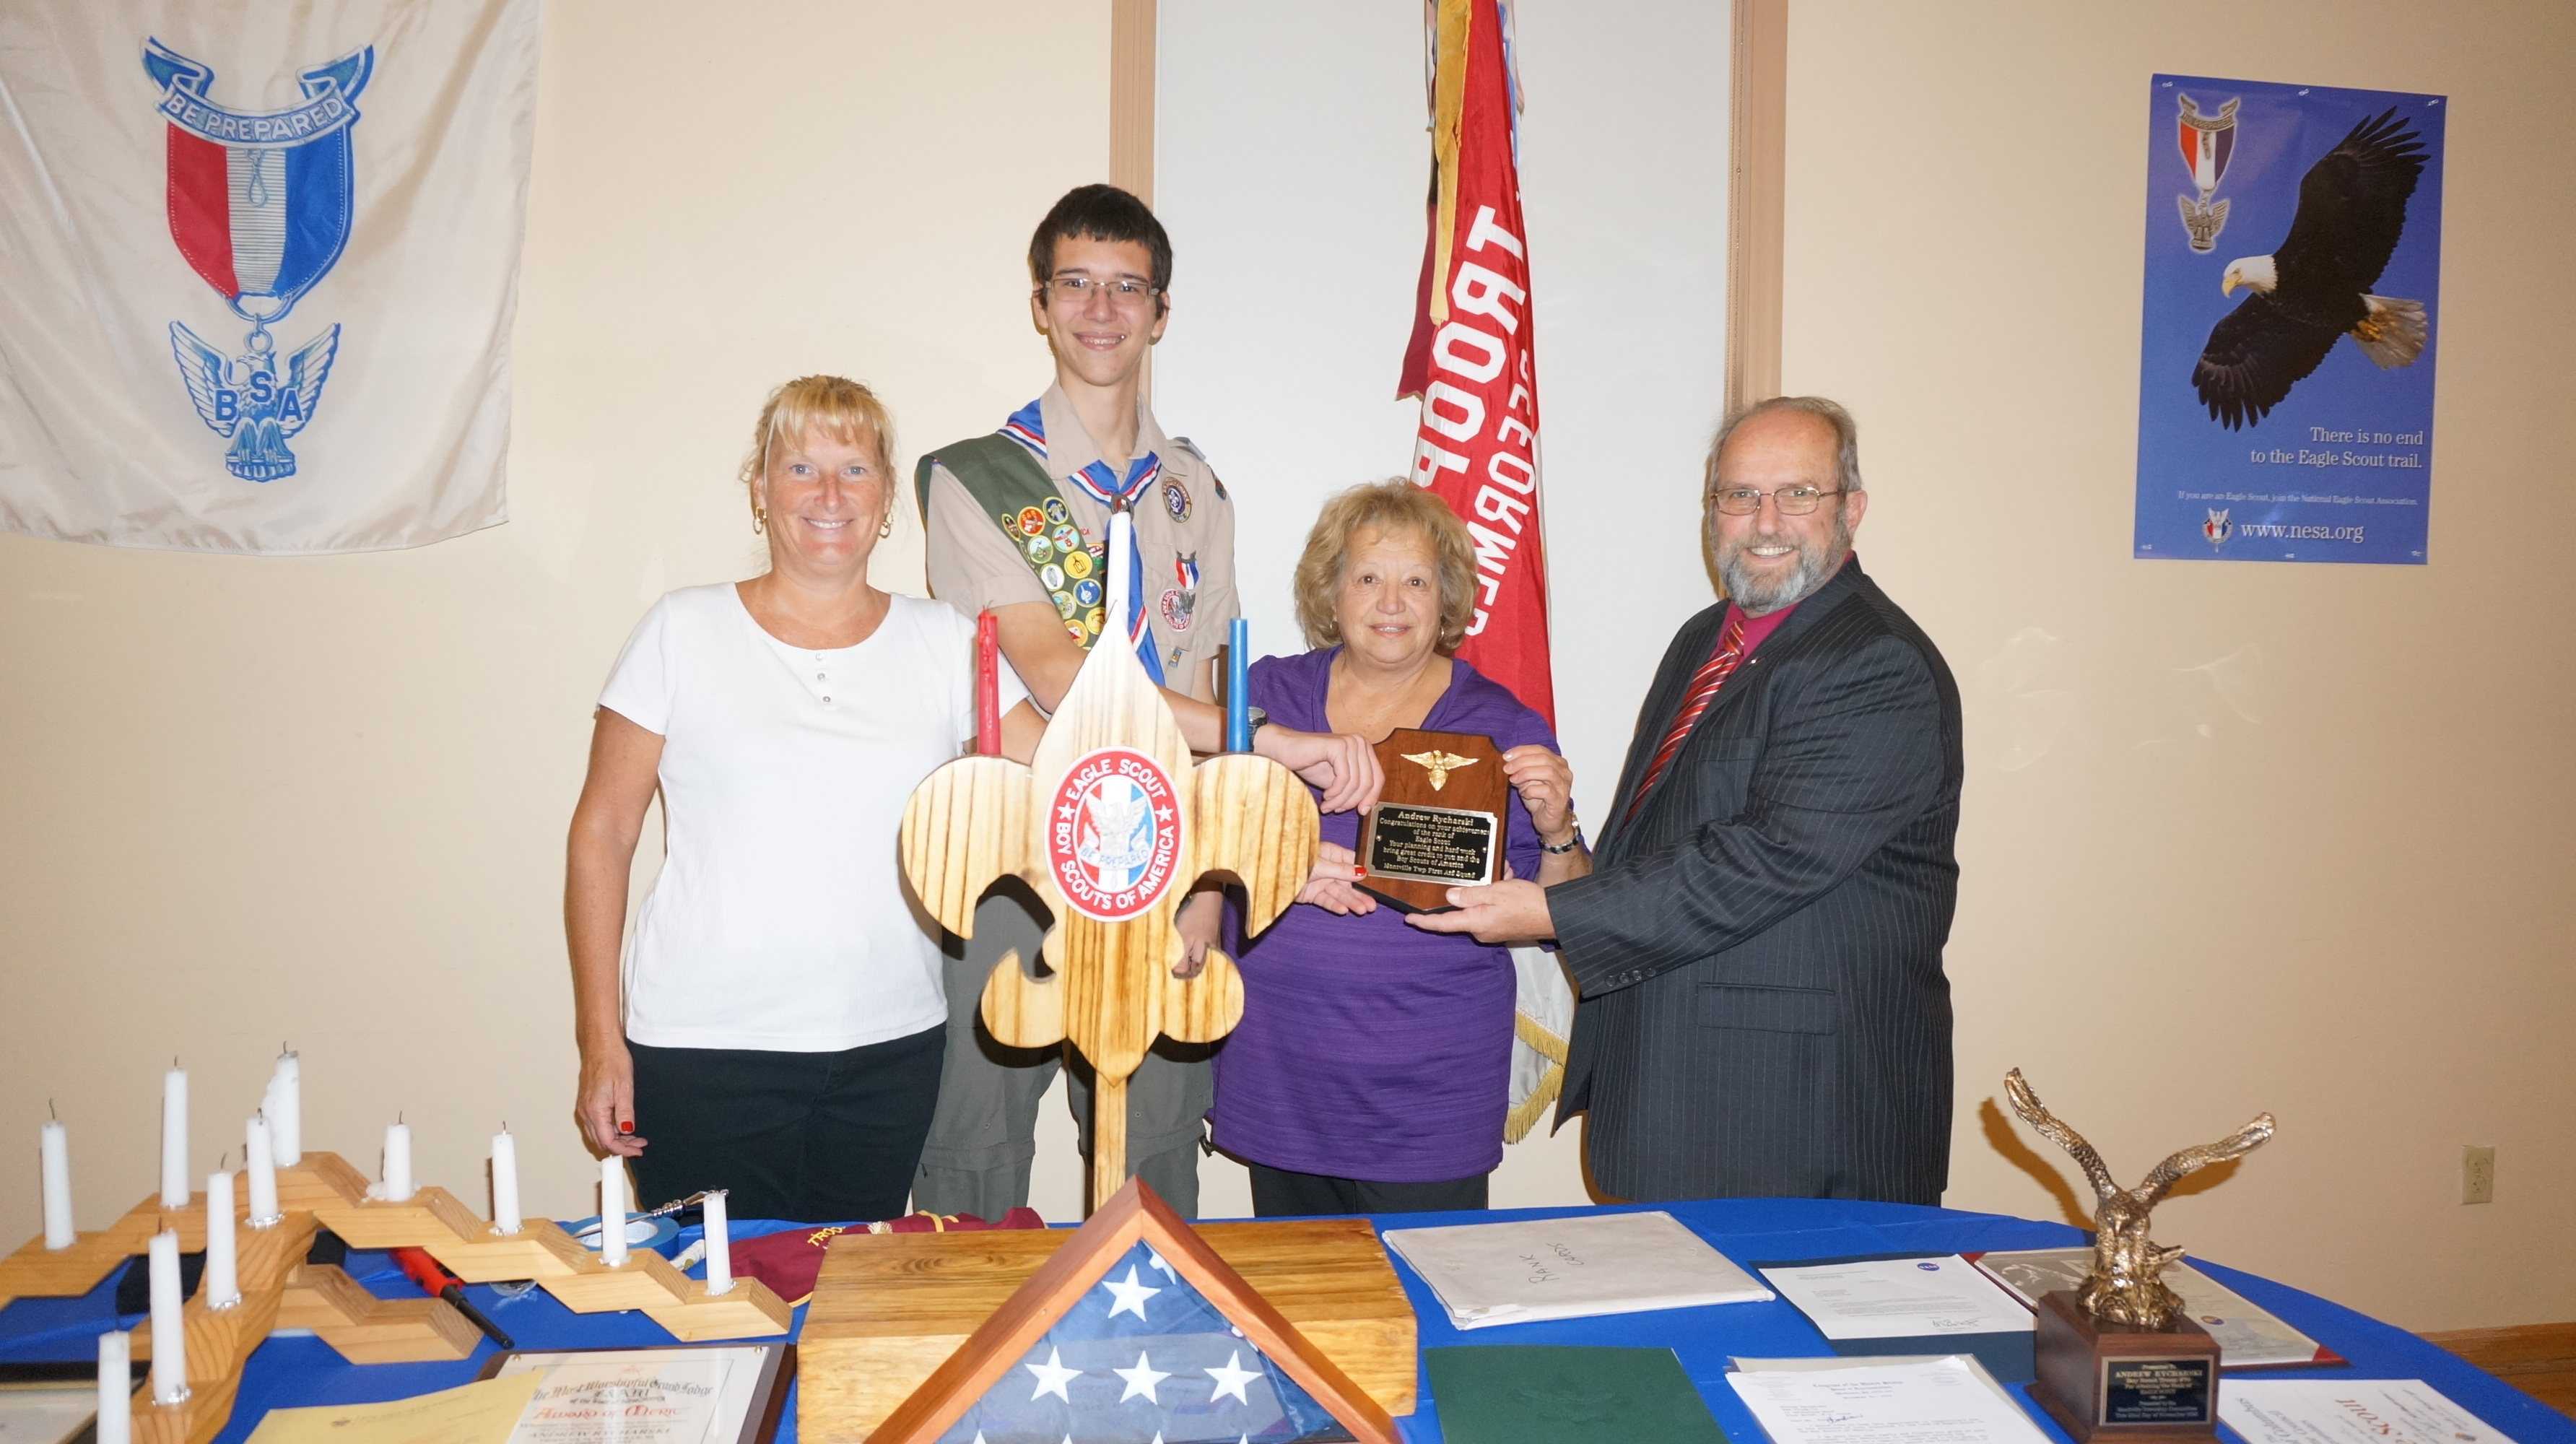 aed77eb03d0535f19781_aa_Andrew_s_Court_of_Honor_169.JPG